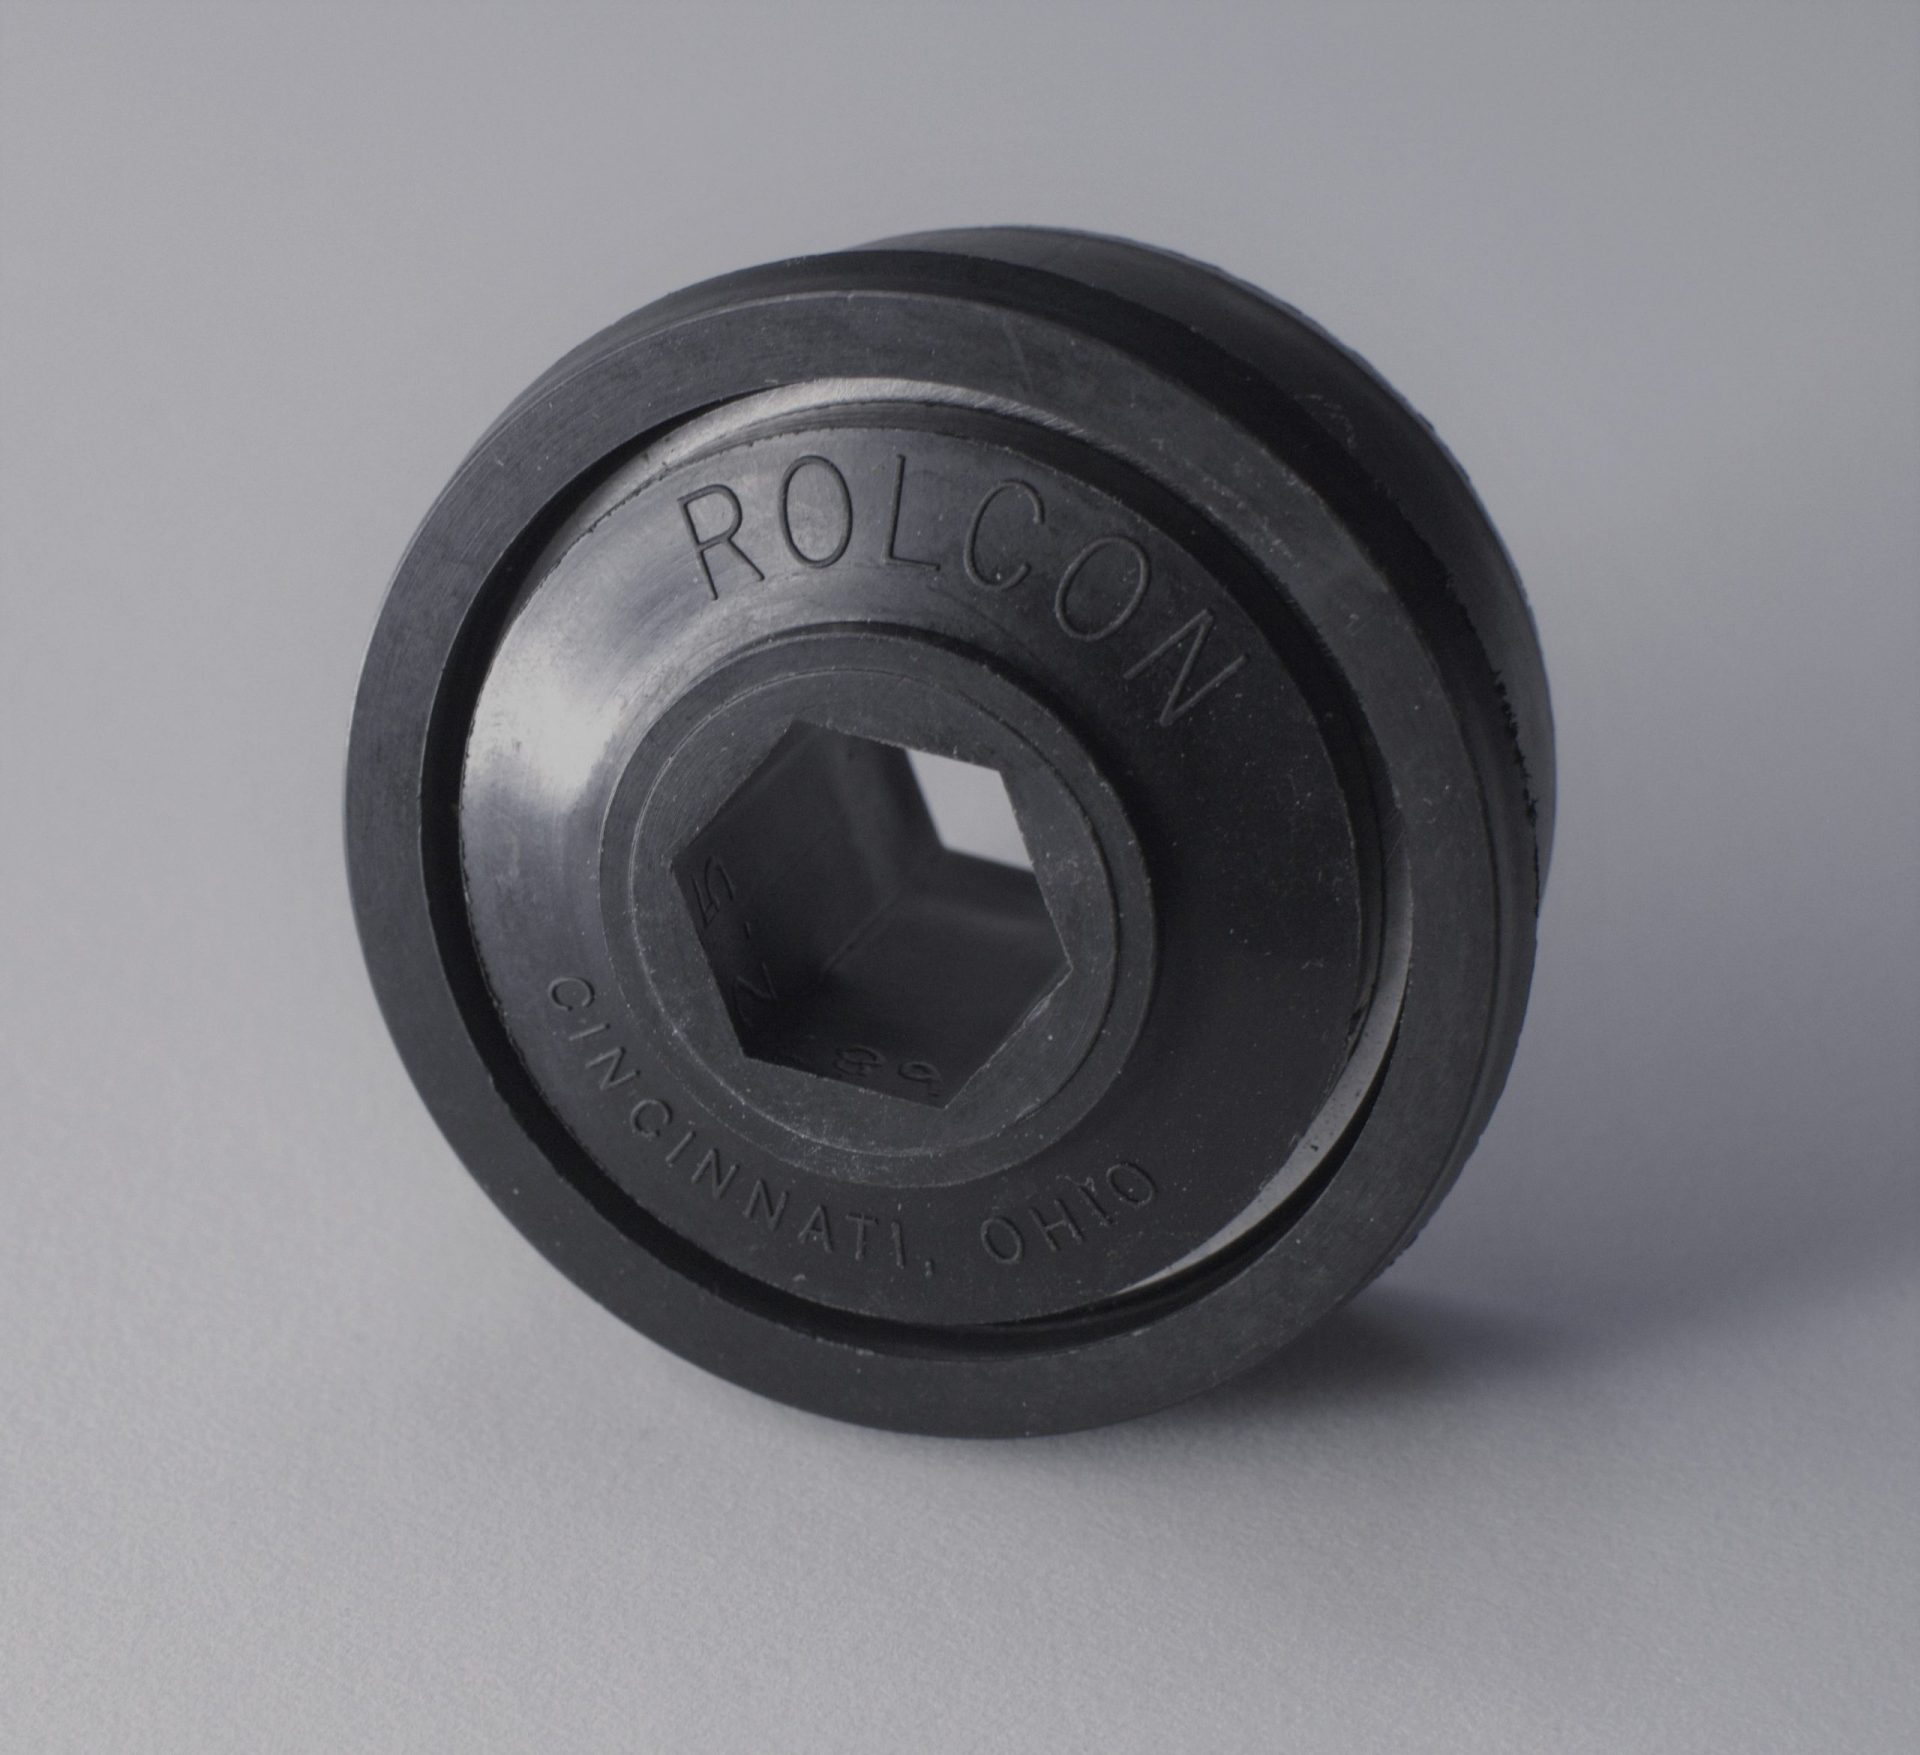 a 1.9 Rolcon roller bearing assembly